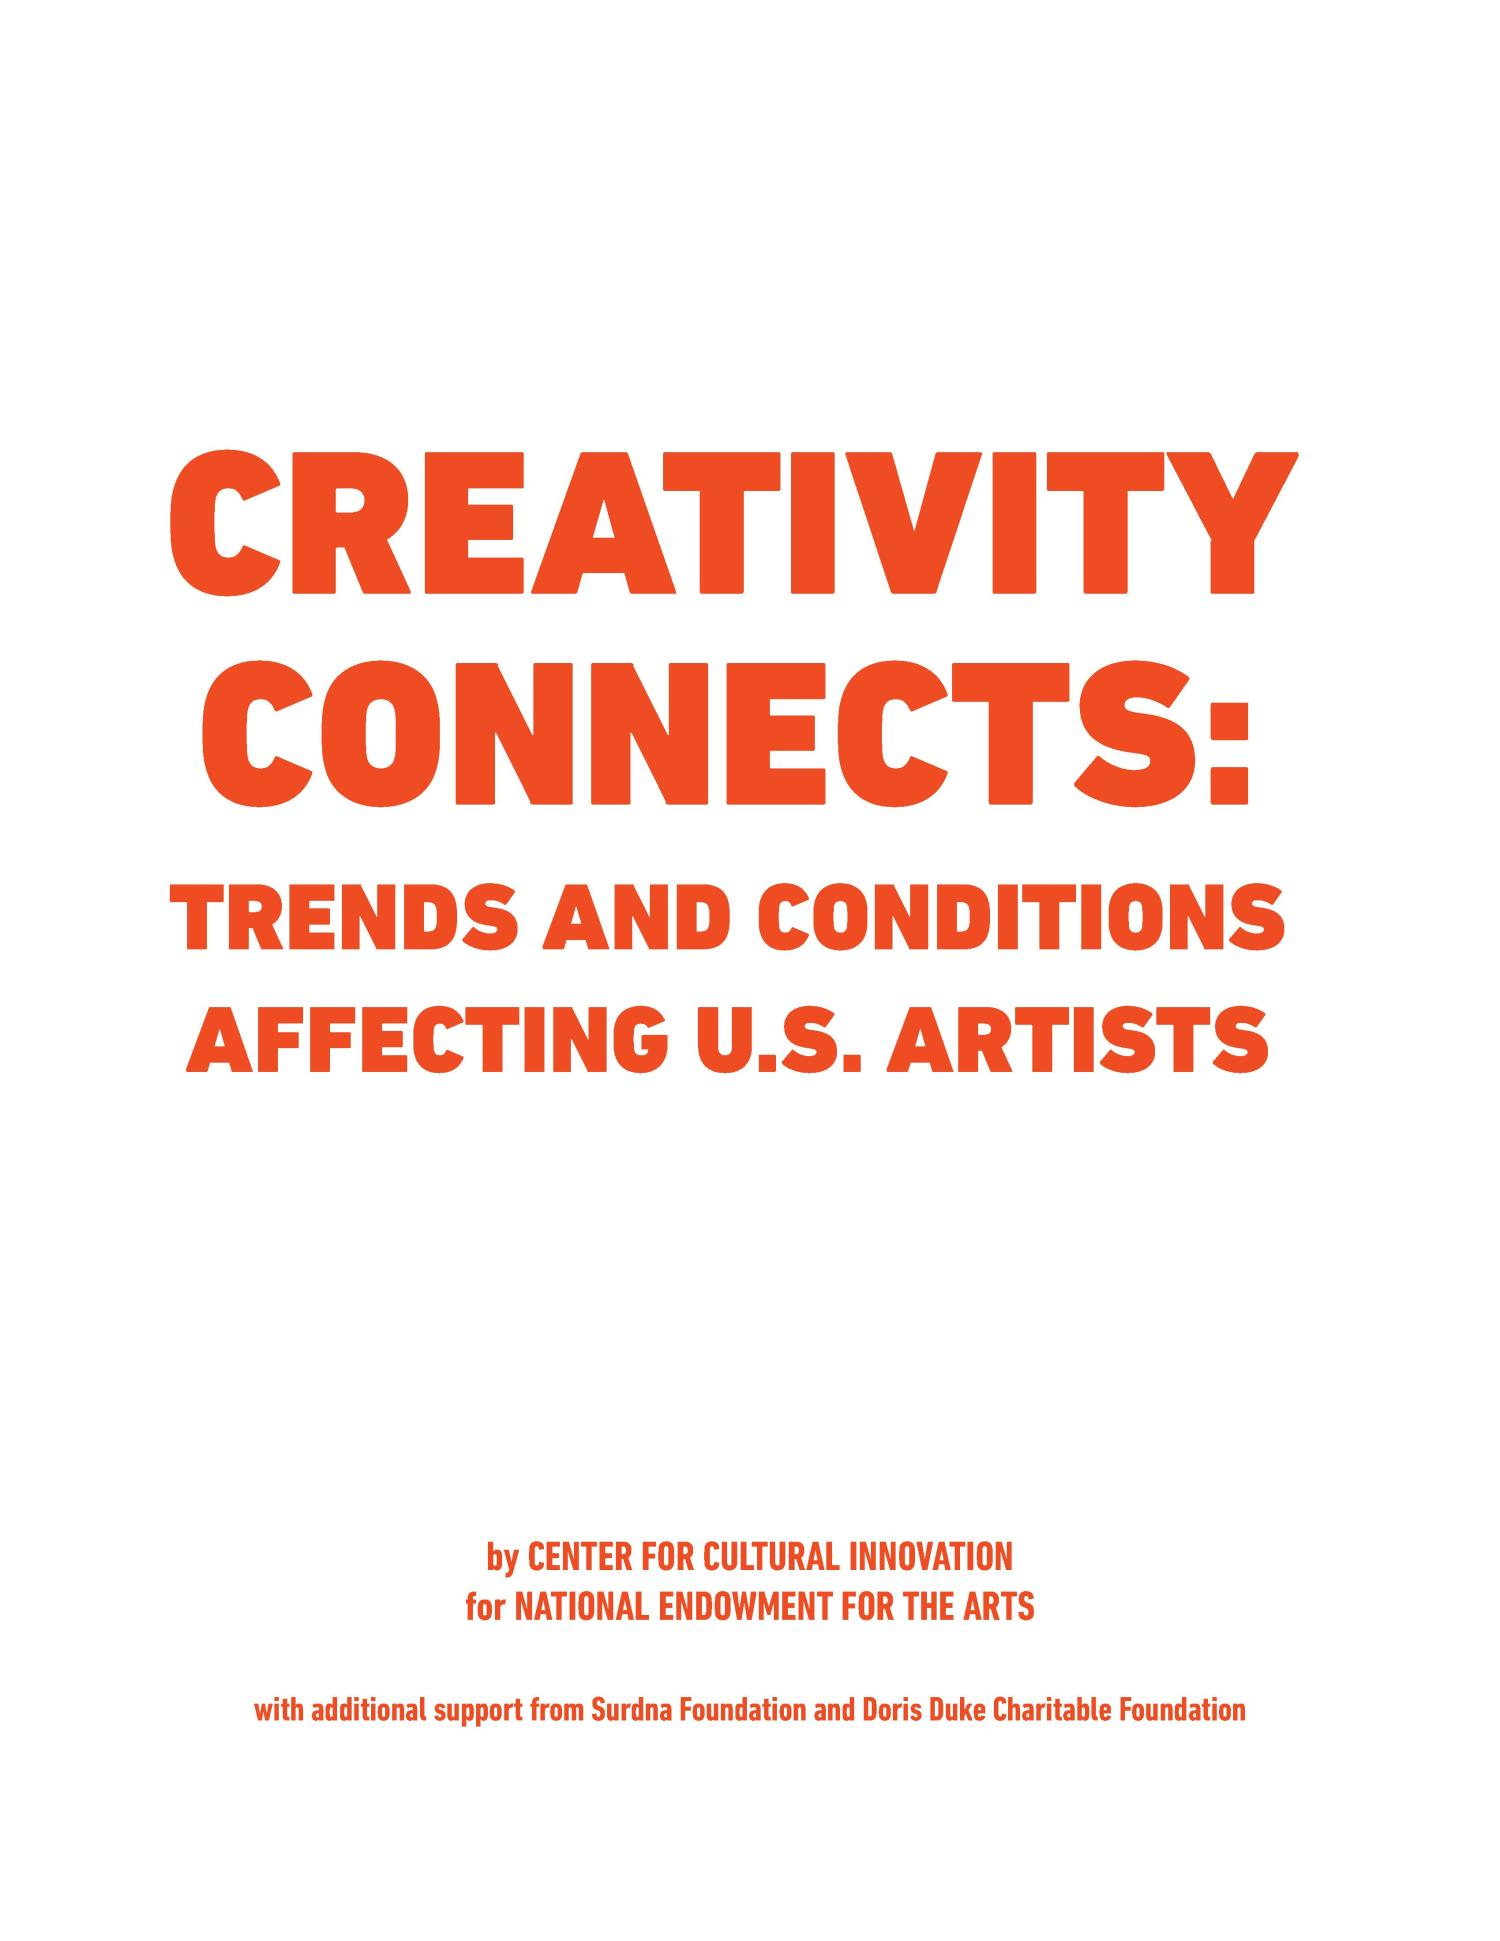 Creativity Connects: Trends and Conditions Affecting U.S. Artists                                                                                                      [Sequence #]: 3 of 88